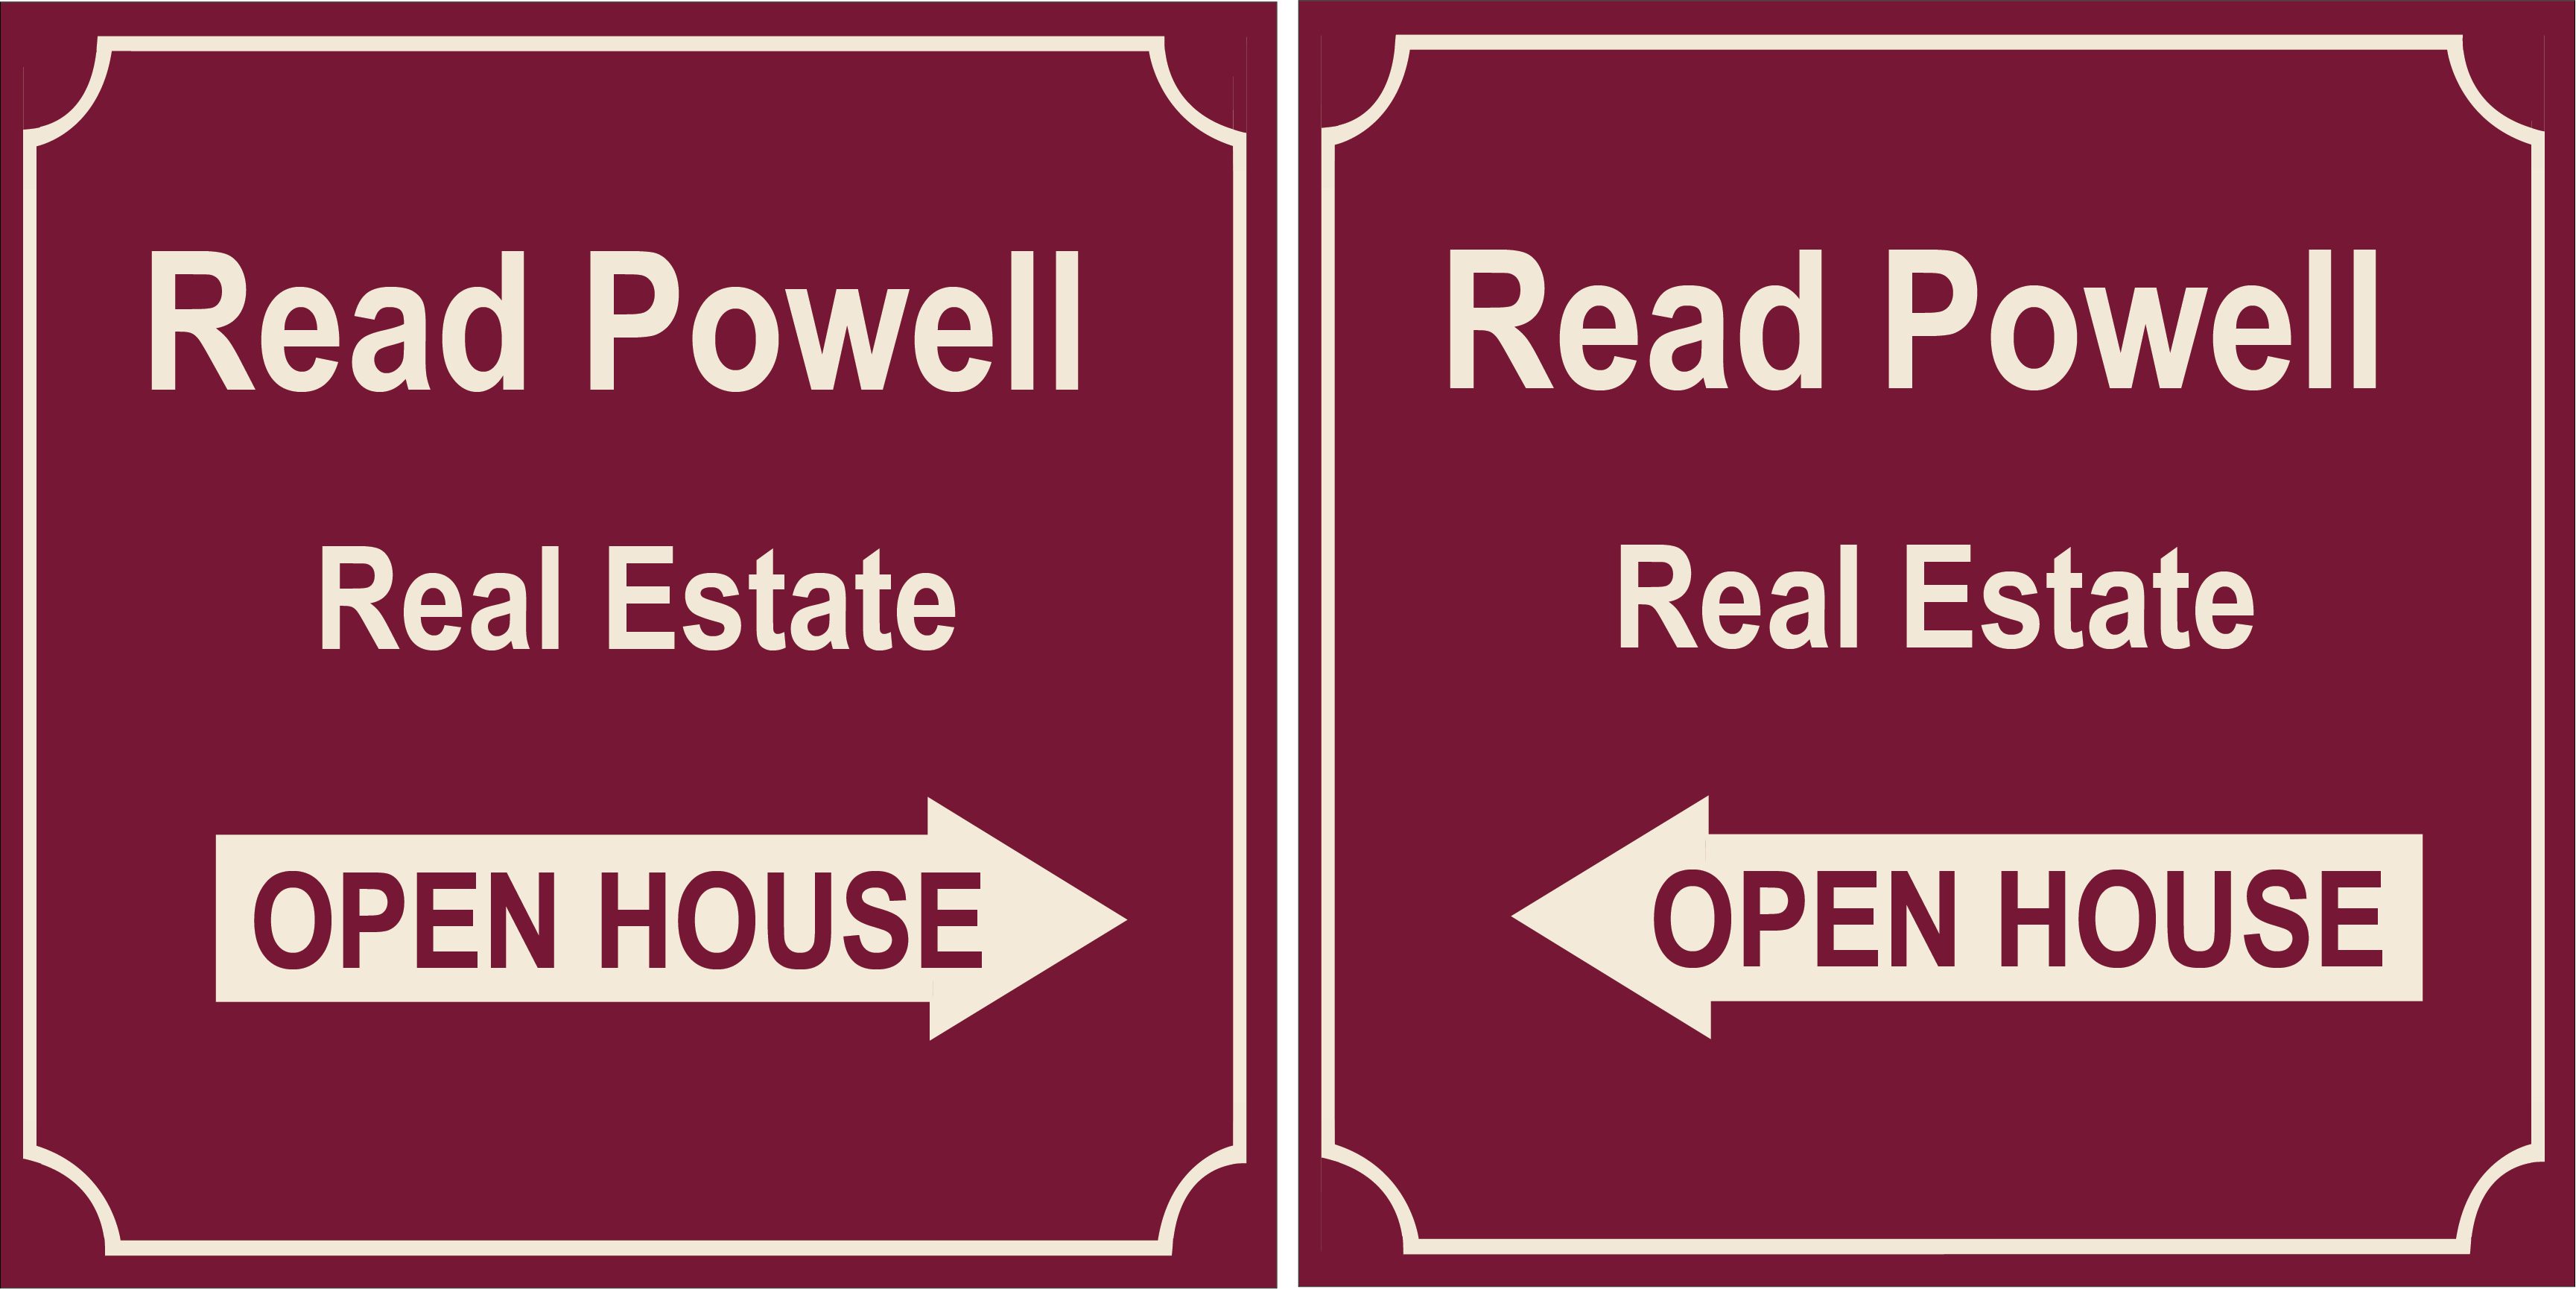 Read Powell Open House Signs